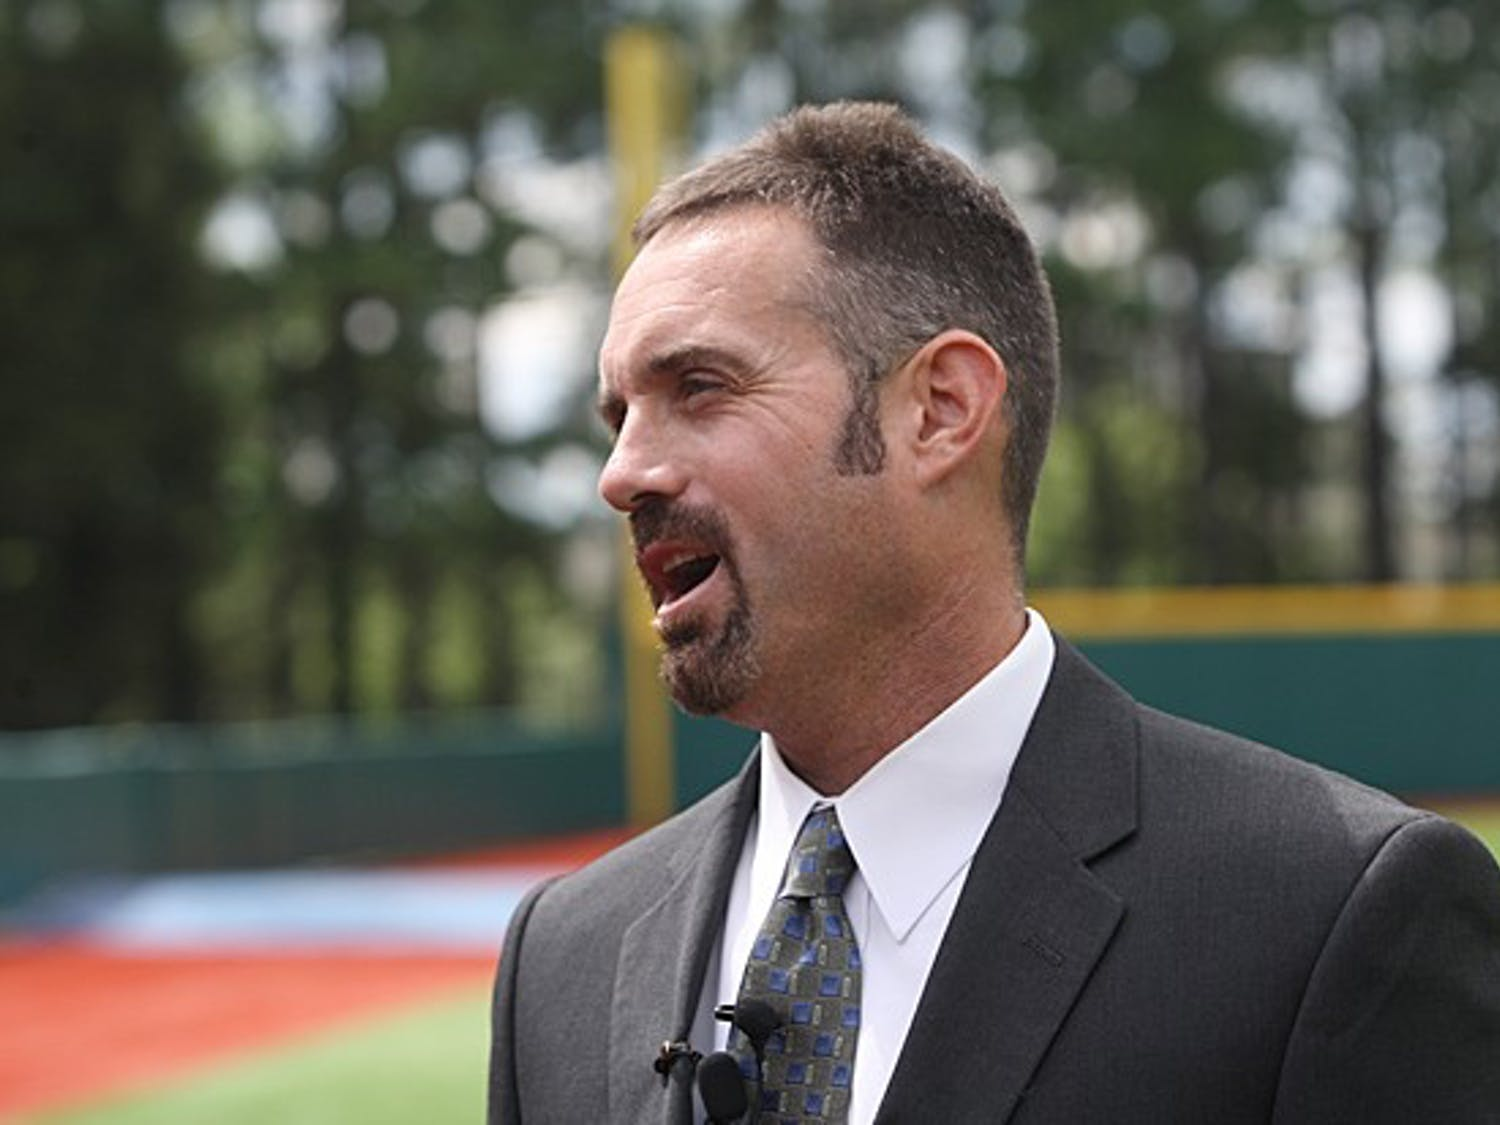 After six consecutive winning seasons at Appalachian State, Chris Pollar was hired to be the Blue Devils' next baseball coach in June.